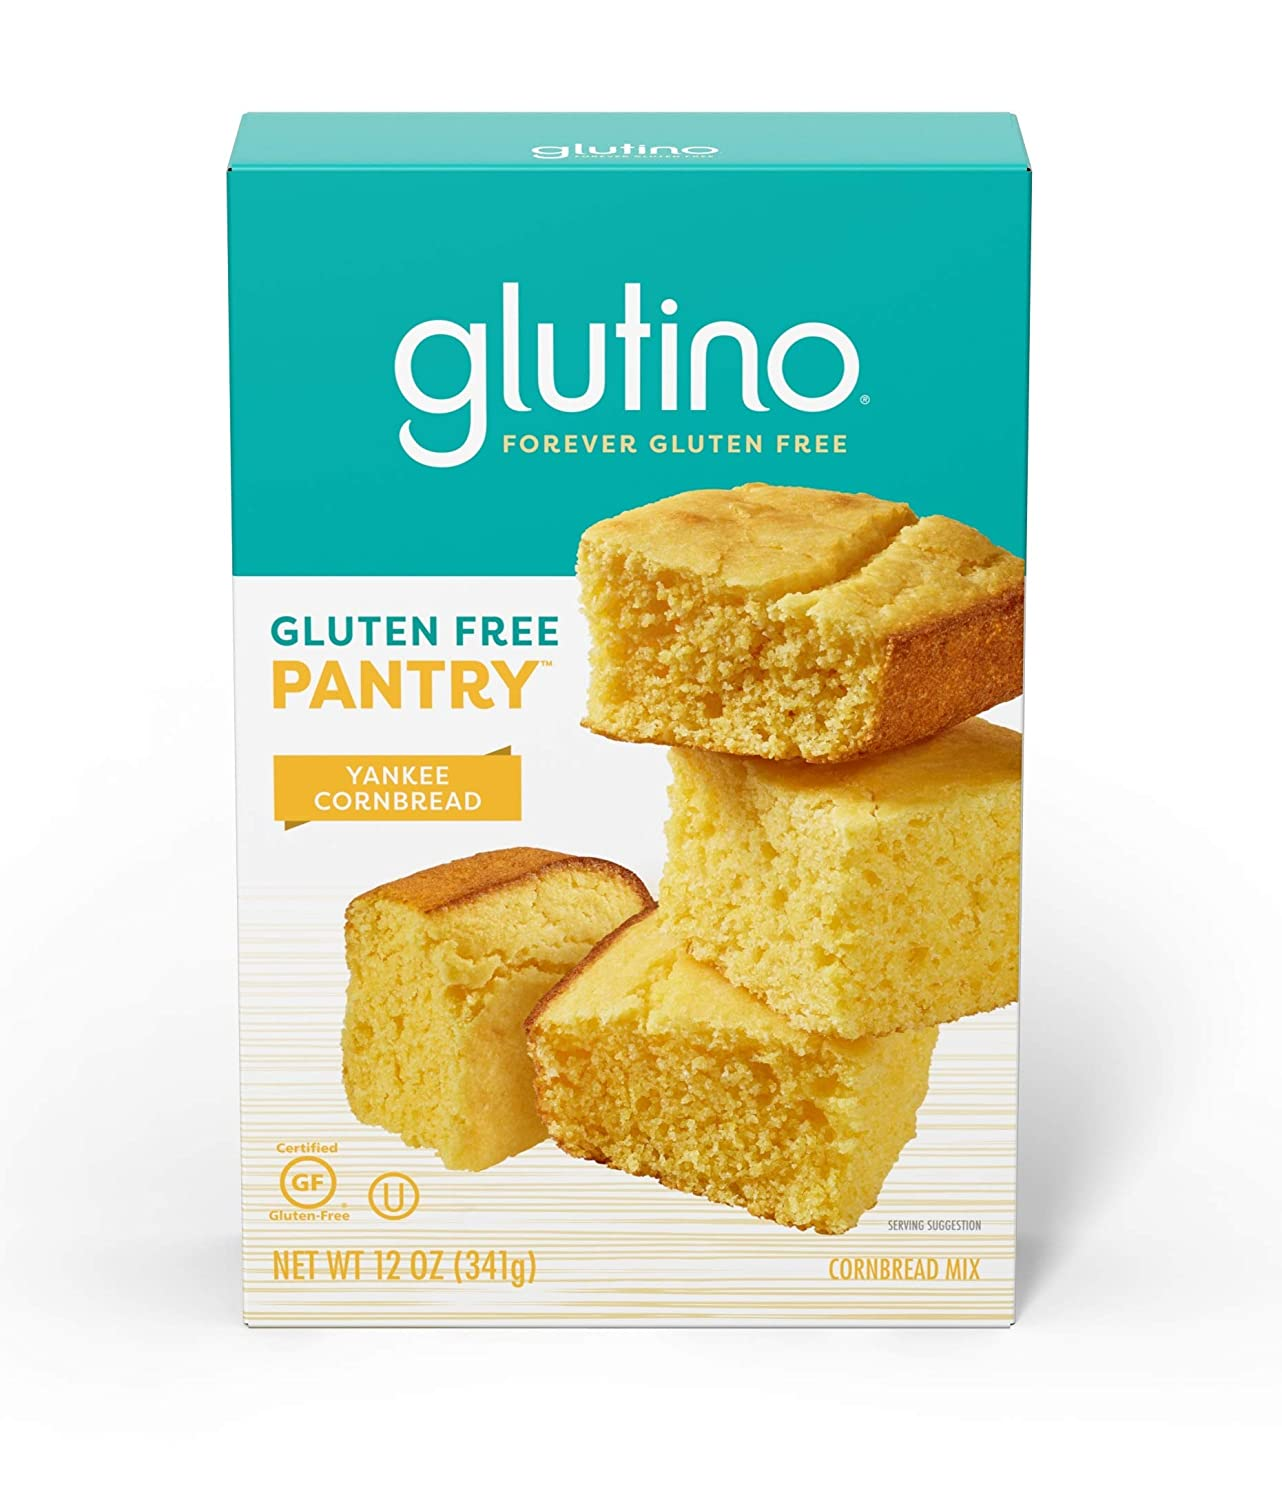 Gluten Free by Glutino Pantry, Baking Mix, Yankee Cornbread, Classic Taste, 12 Ounce